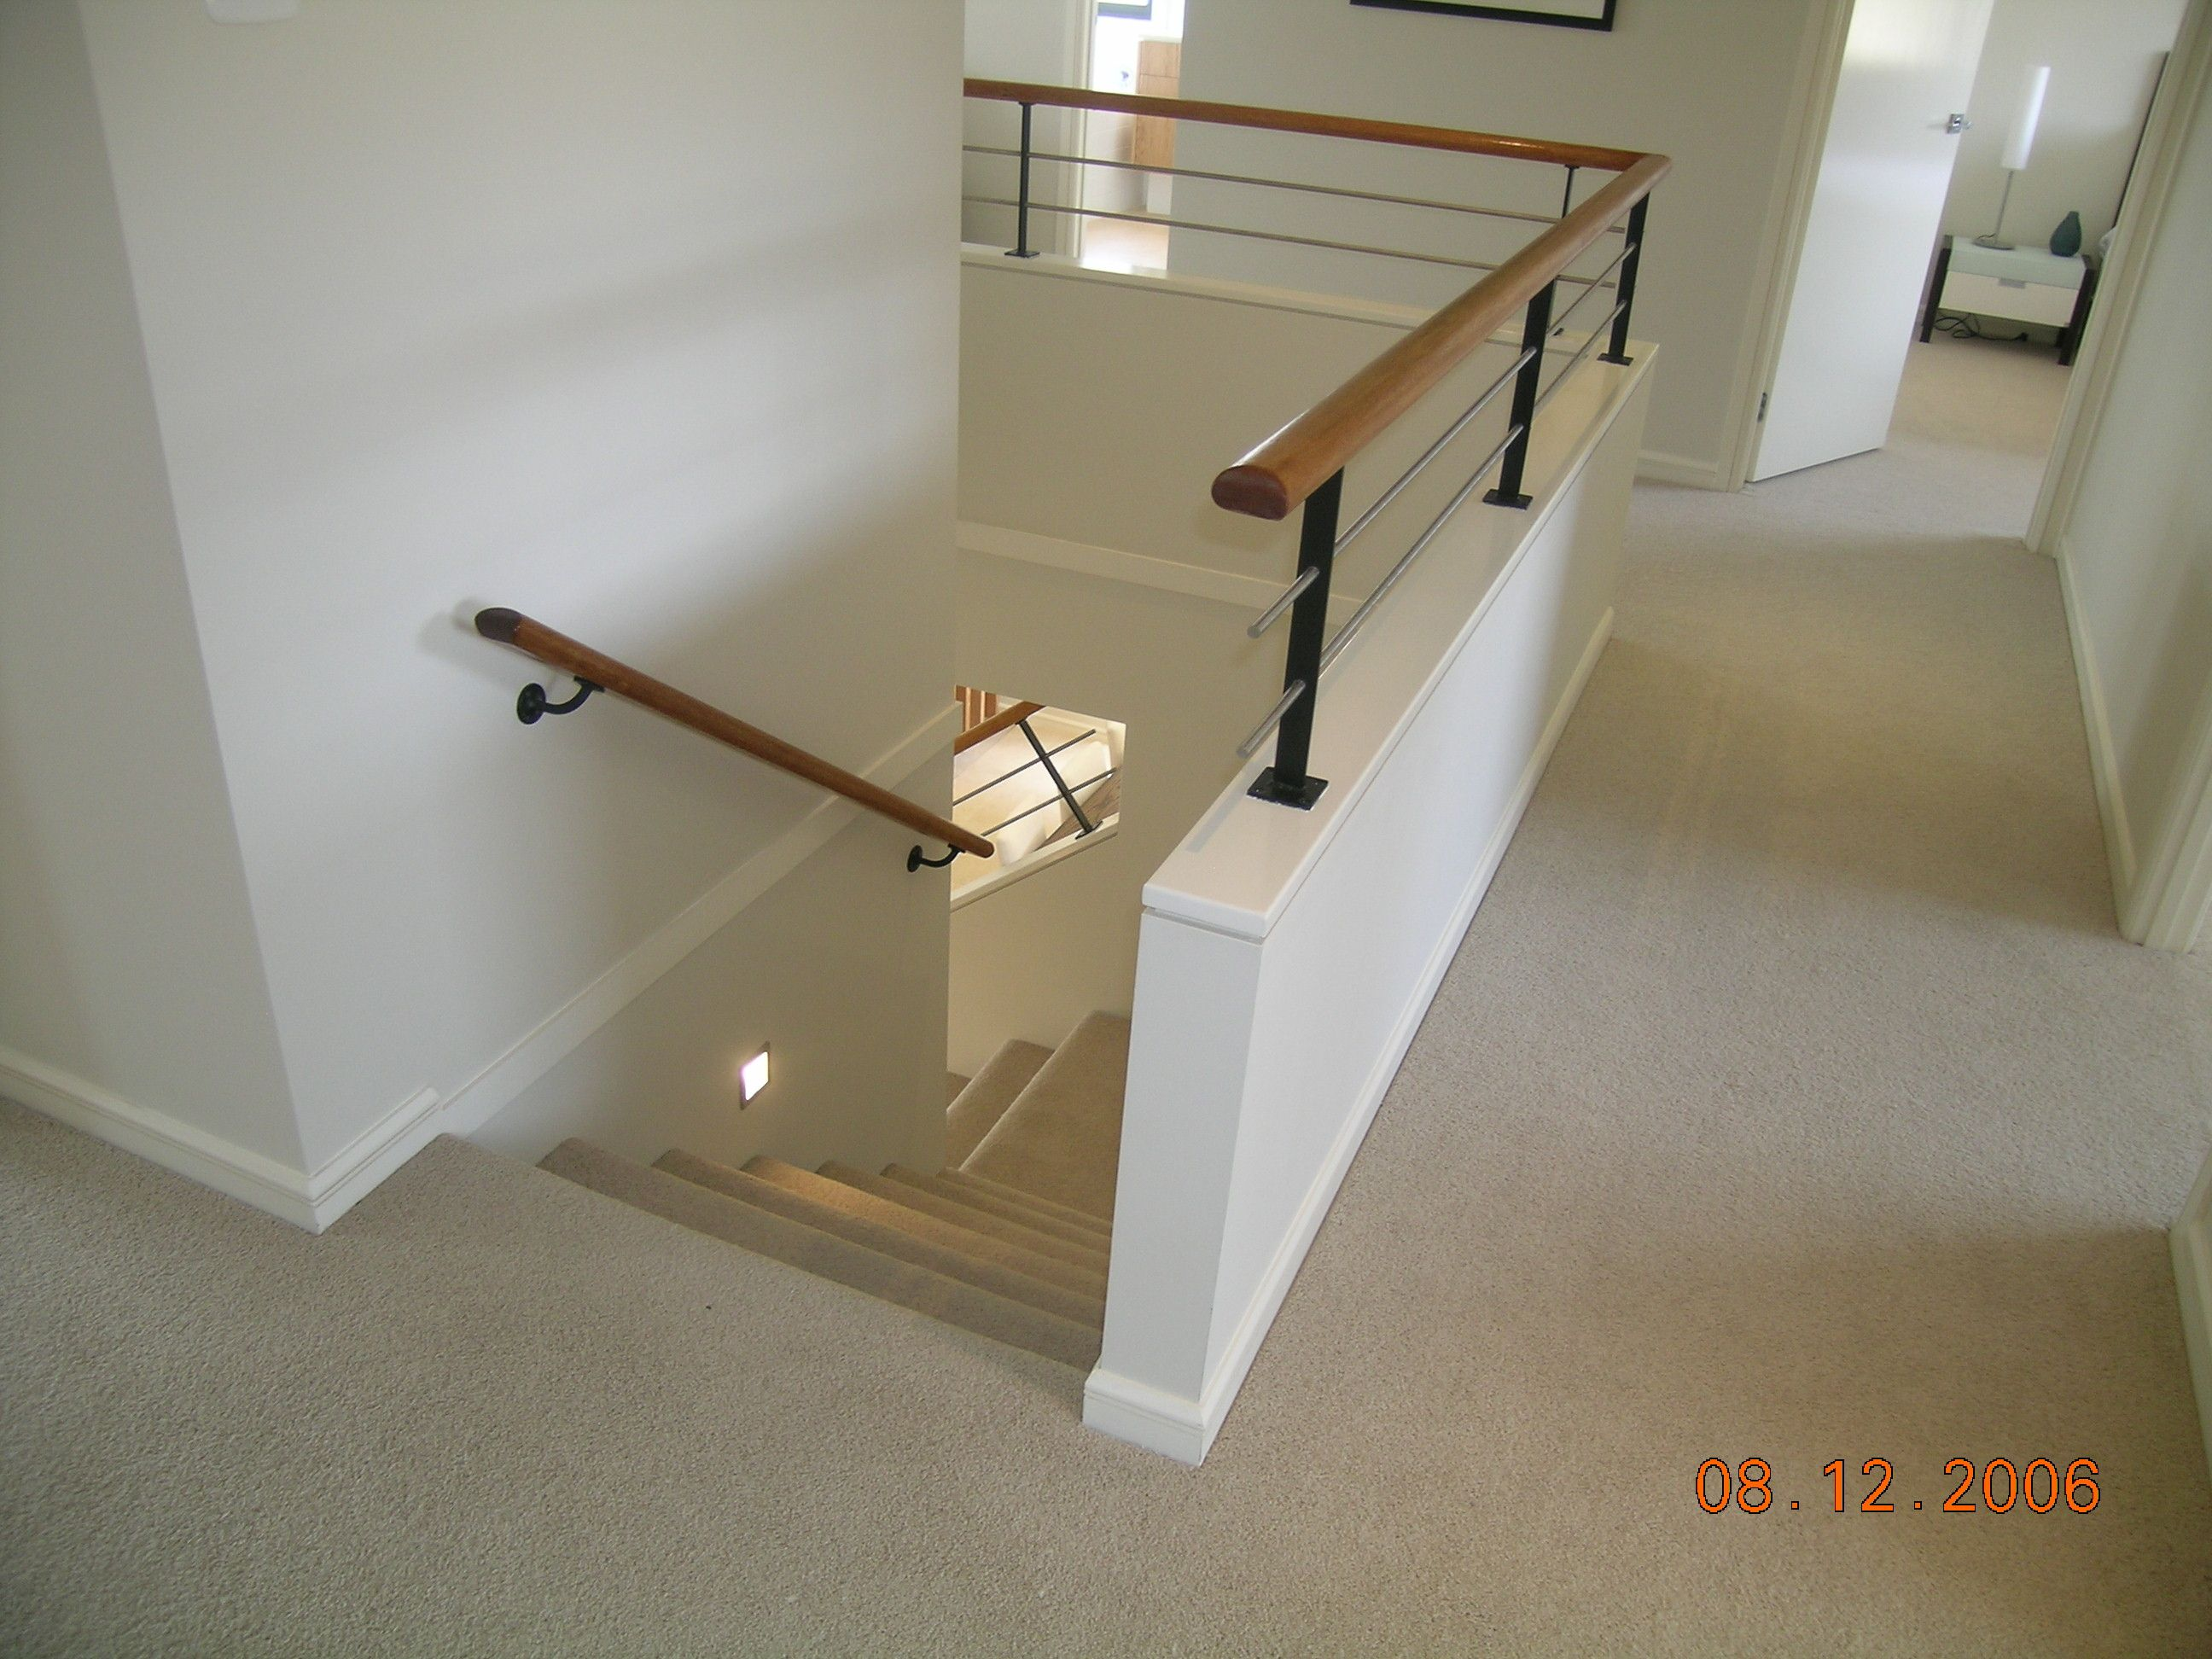 Half wall Timber Handrail stainless steel rails and black powder